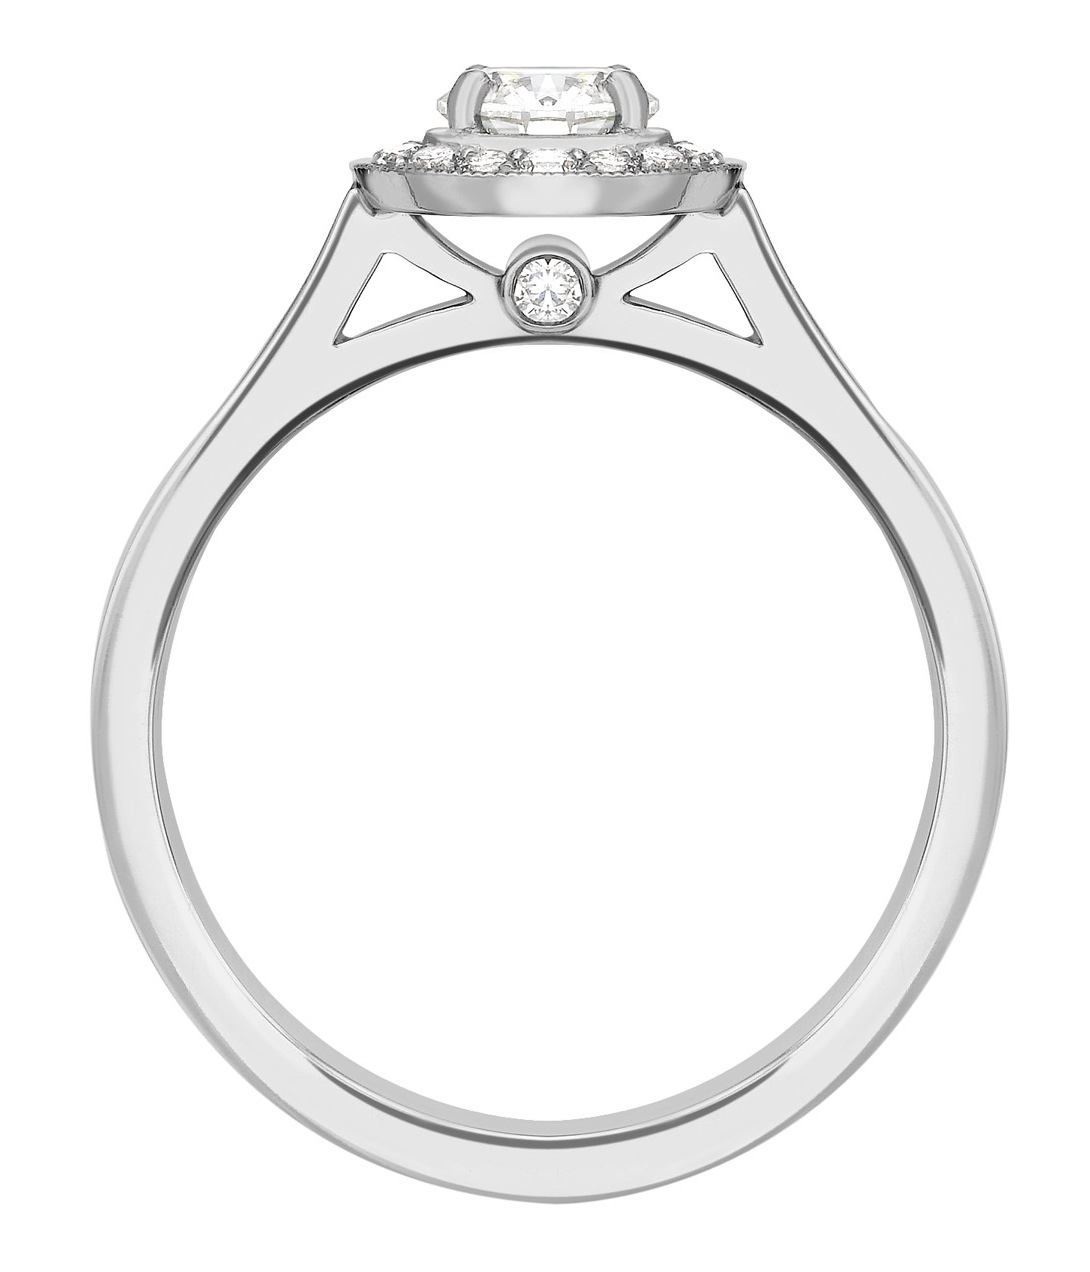 Round 0.50ct White Gold Halo Diamond Set Engagement Ring GRC728 Image 2